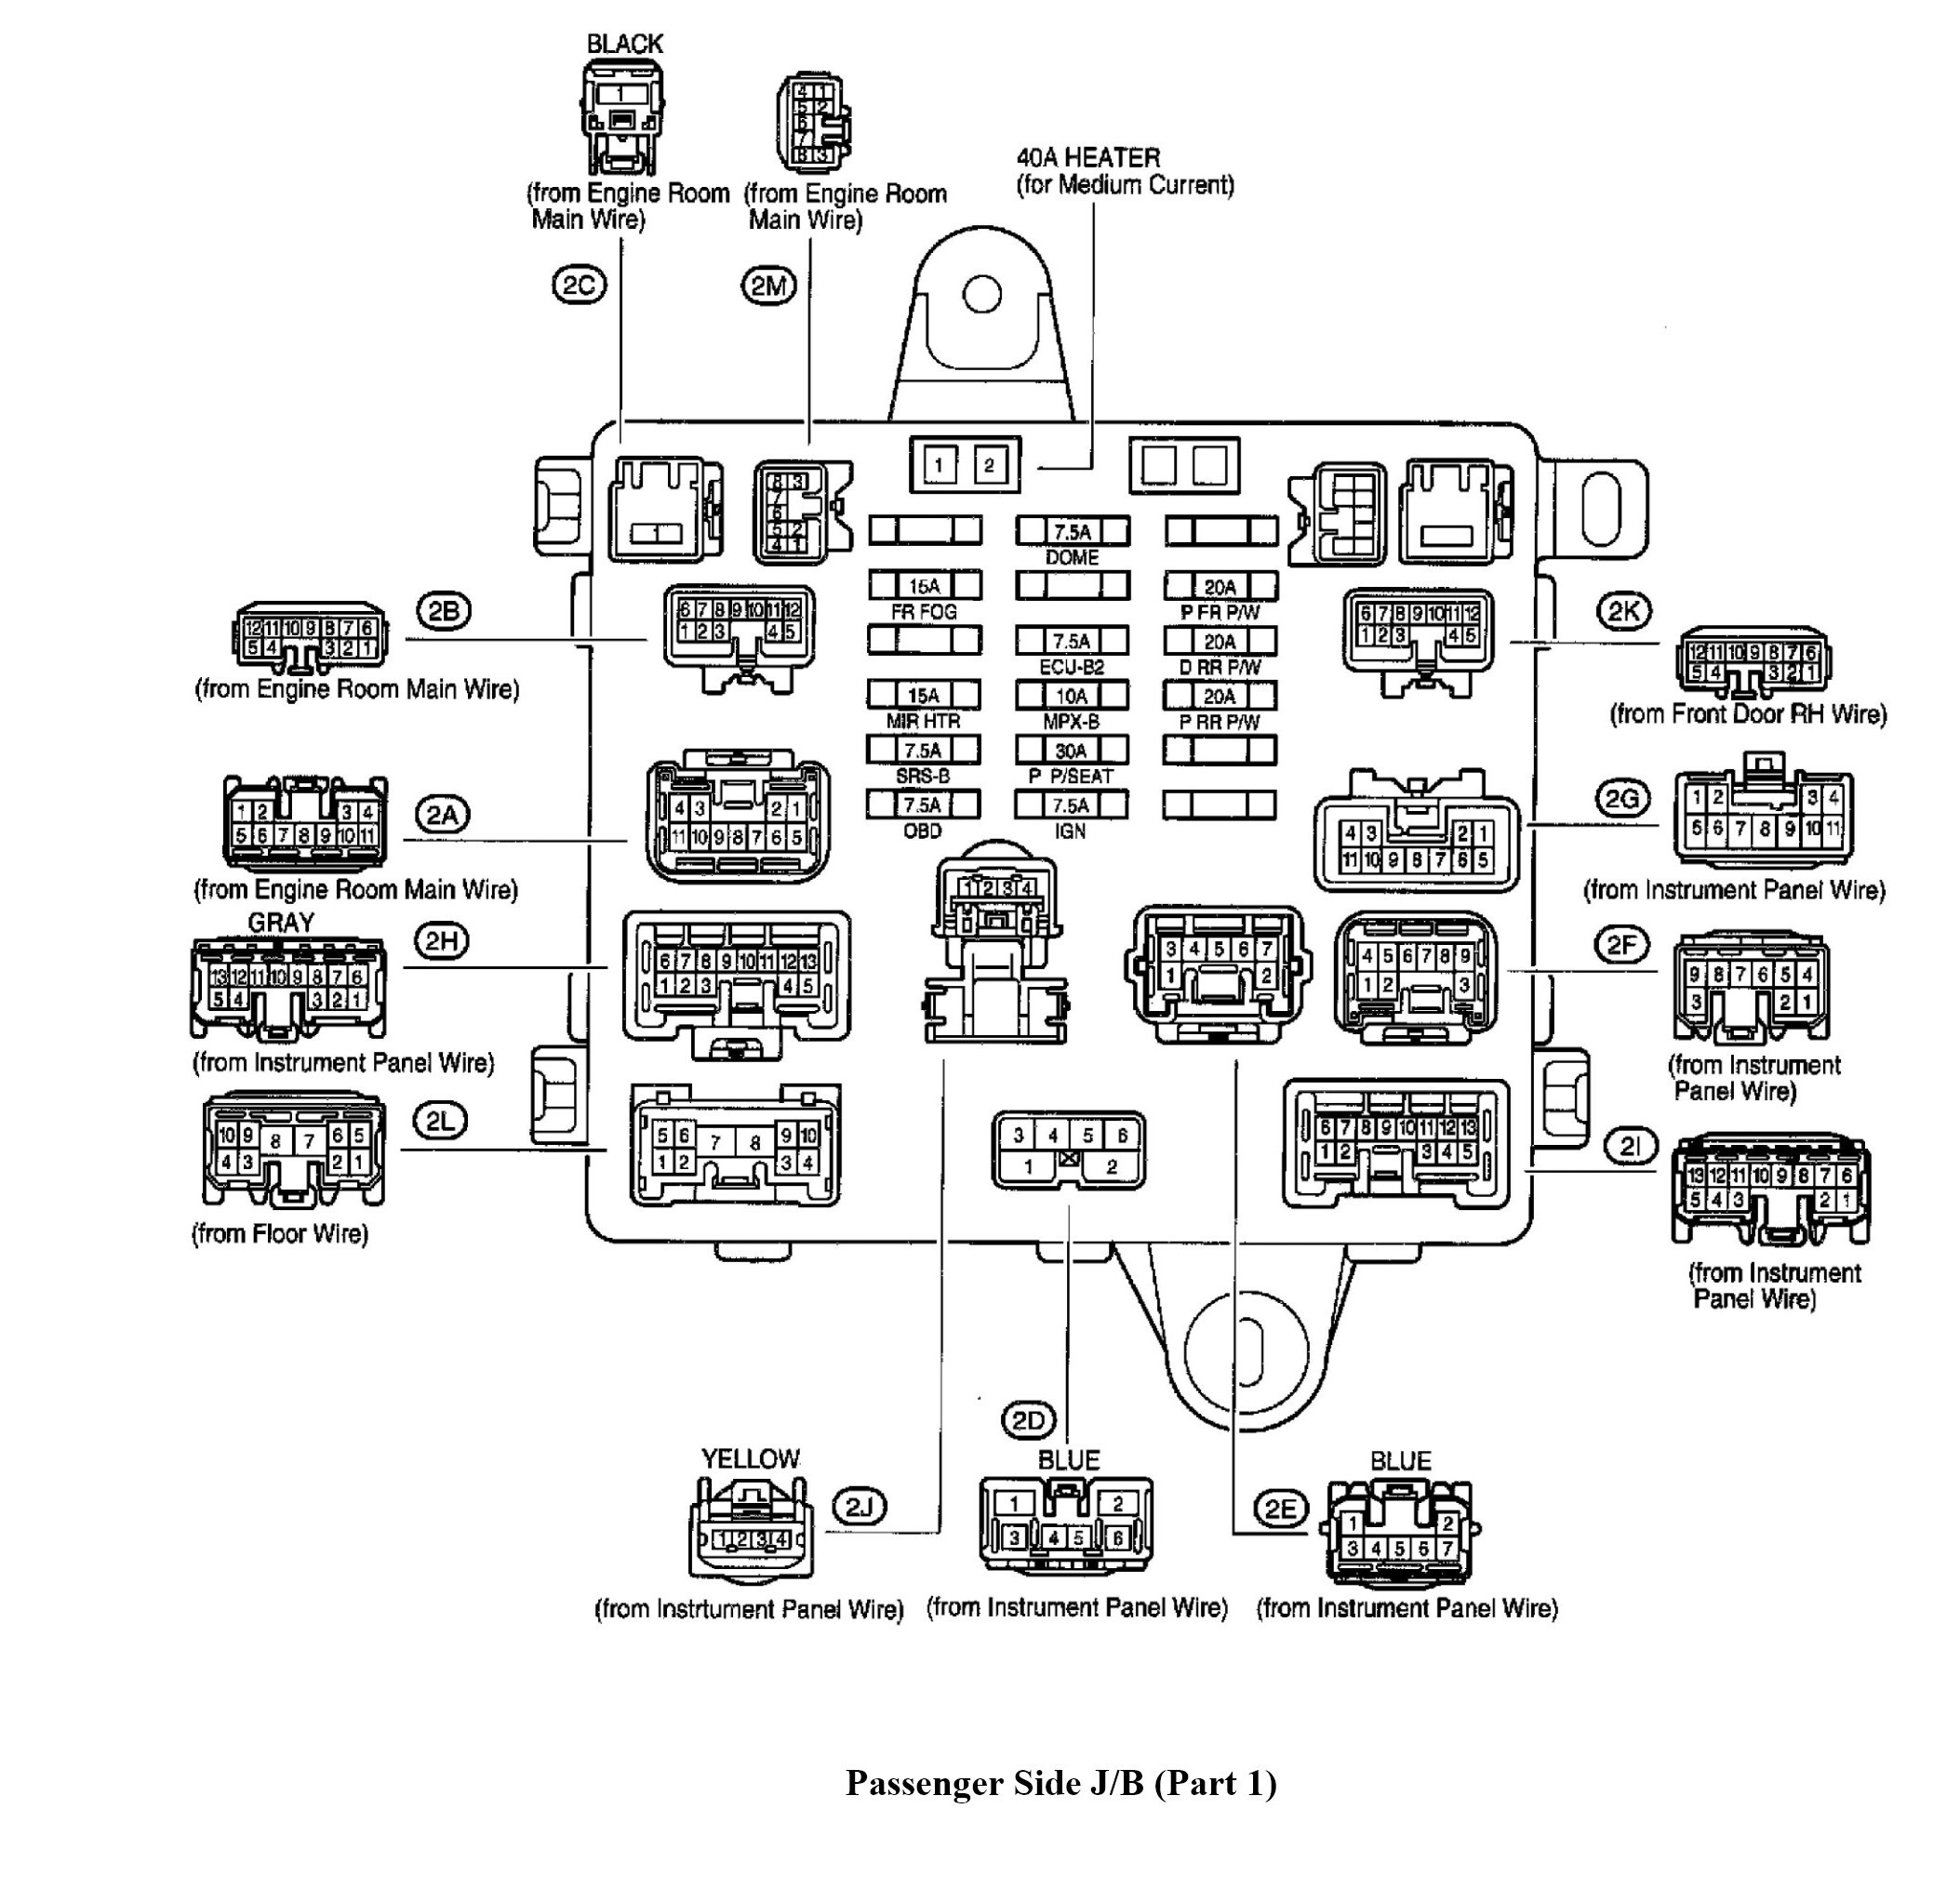 1992 Chrysler New Yorker Fuse Box Diagram